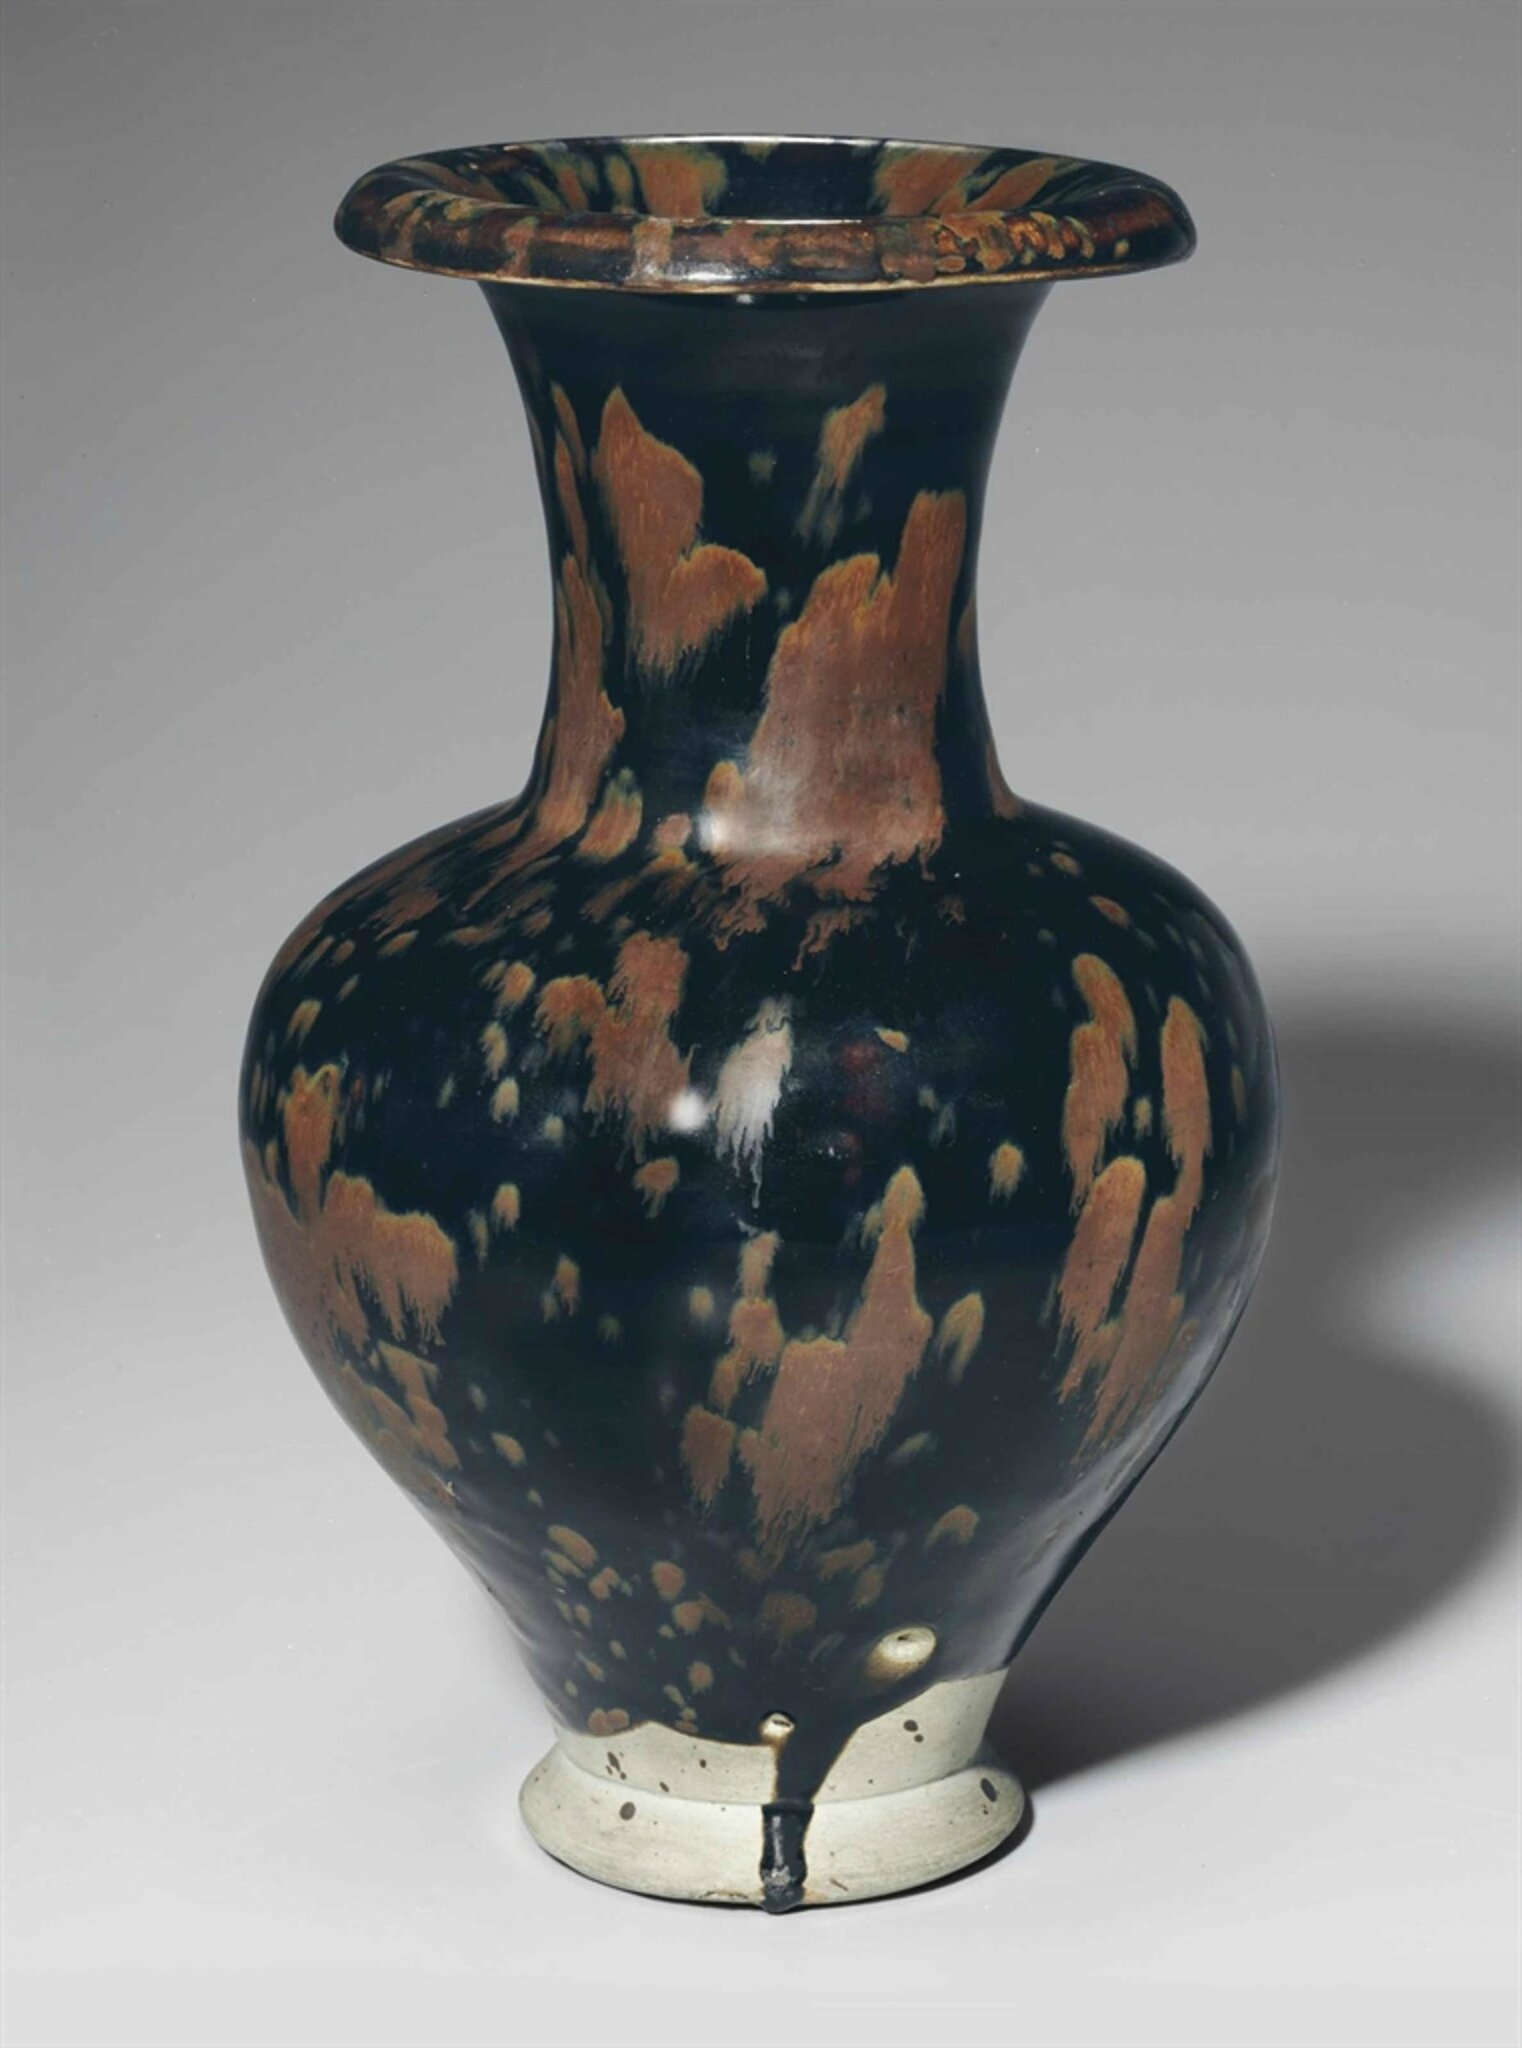 A very rare Cizhou-type black and russet 'partridge feather'-glazed vase, Northern Song-Jin dynasty, 12th century